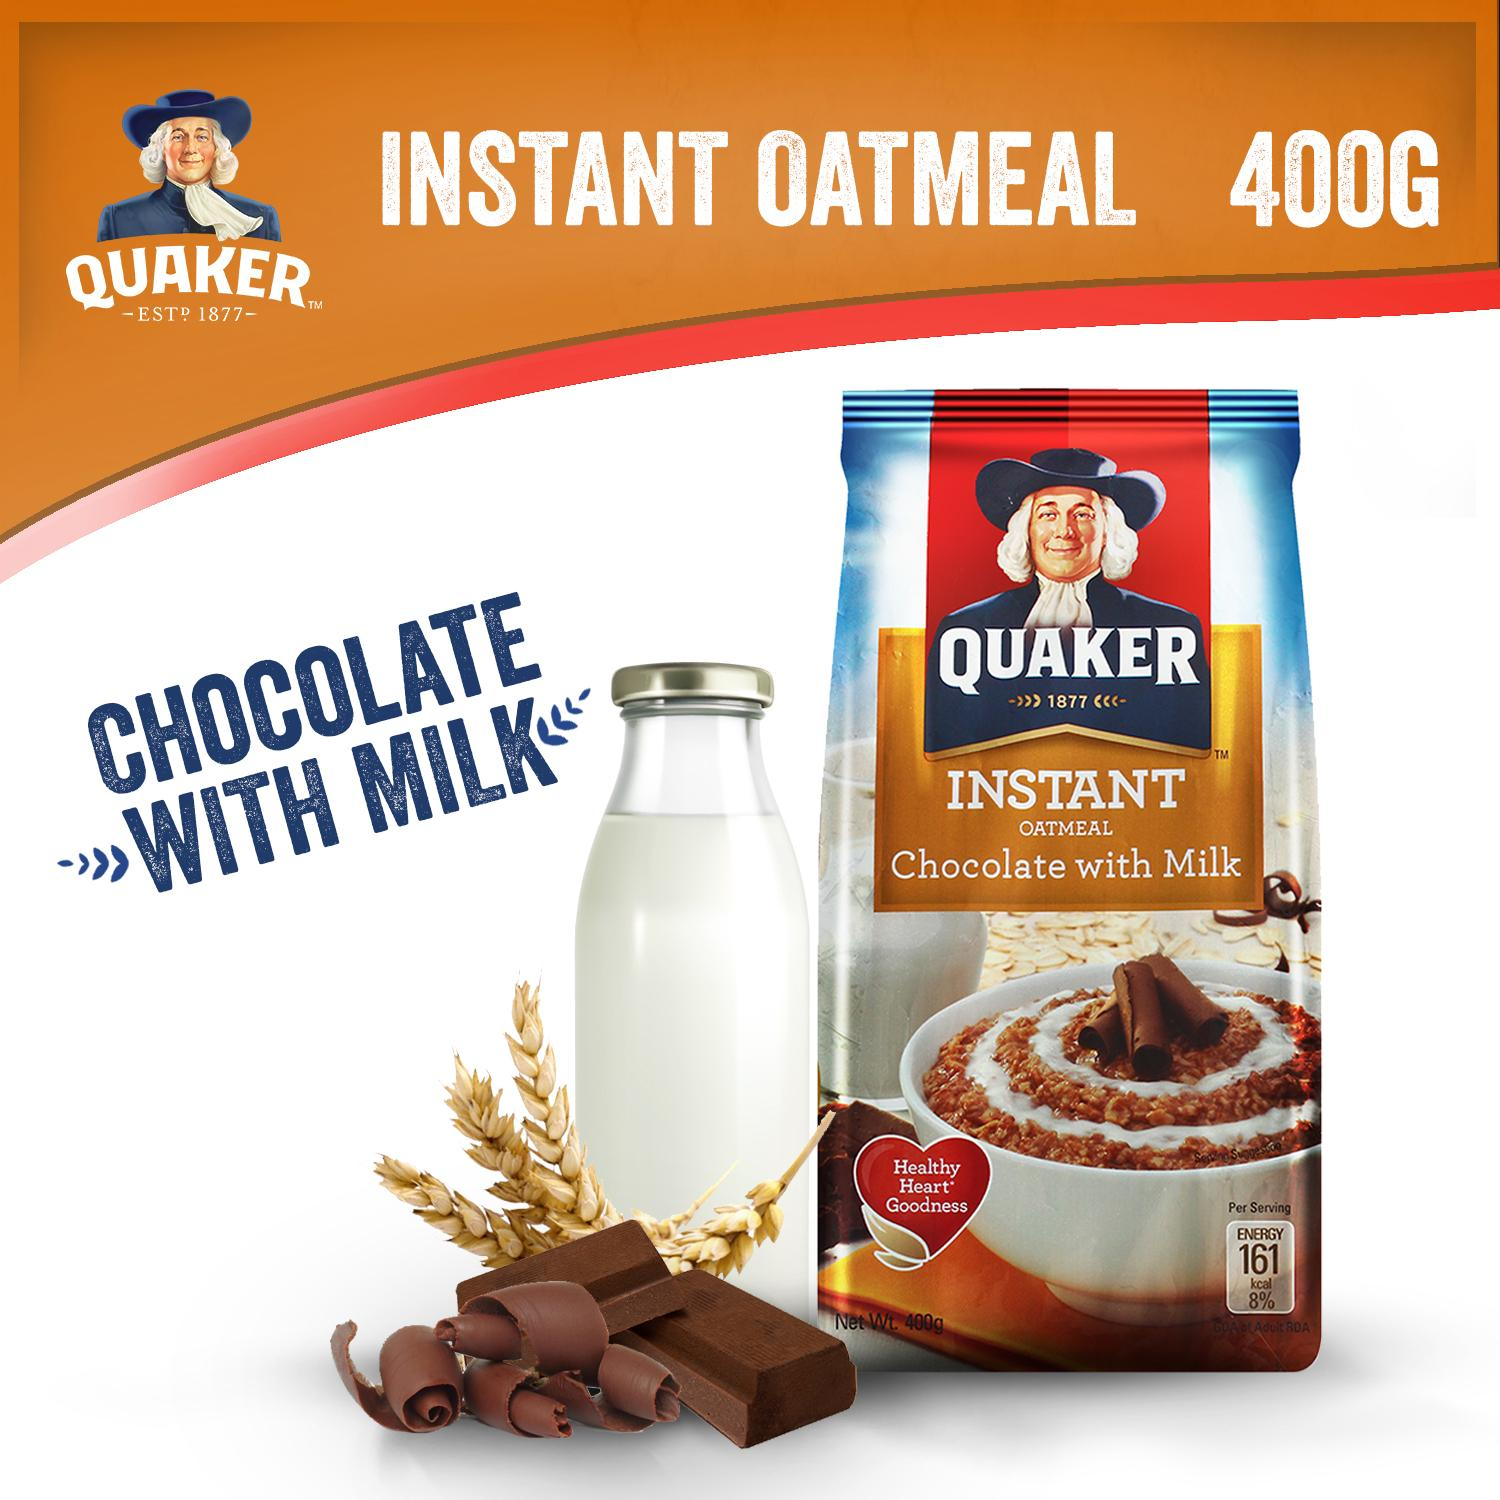 Quaker Instant Oatmeal Chocolate With Milk Flavor 400g By Quaker.